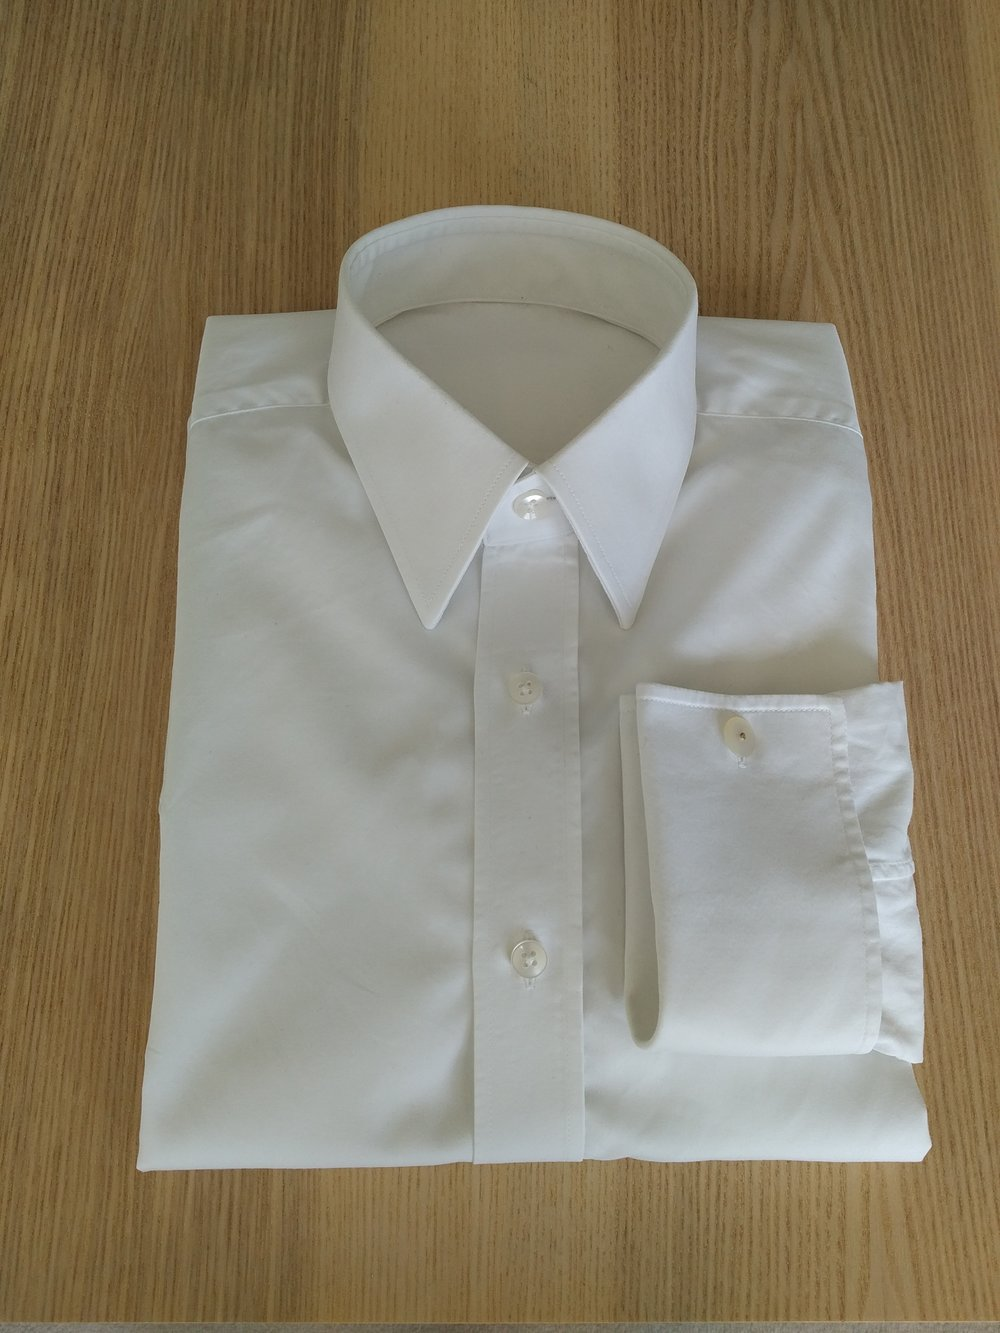 Shirts and Blouses  -  Our shirts and blouse goes along with the modern time we live in.This is why we offer both Bespoke Made To Measure and Bespoke Hand Stitched shirts and blouses.All our shirts and blouses will be designed from scratch starting from a blank piece of paper were we will draw your pattern using our in house roules.Bespoke Made To Measure shirts and blouses will be finished by our tailors in line with modern machine tecnique.Bespoke Hand Stitched shirts and blouse will have included in the process the baste fitting, allowing us to have the best unique pattern for you!Bespoke Hand Stitched products will have